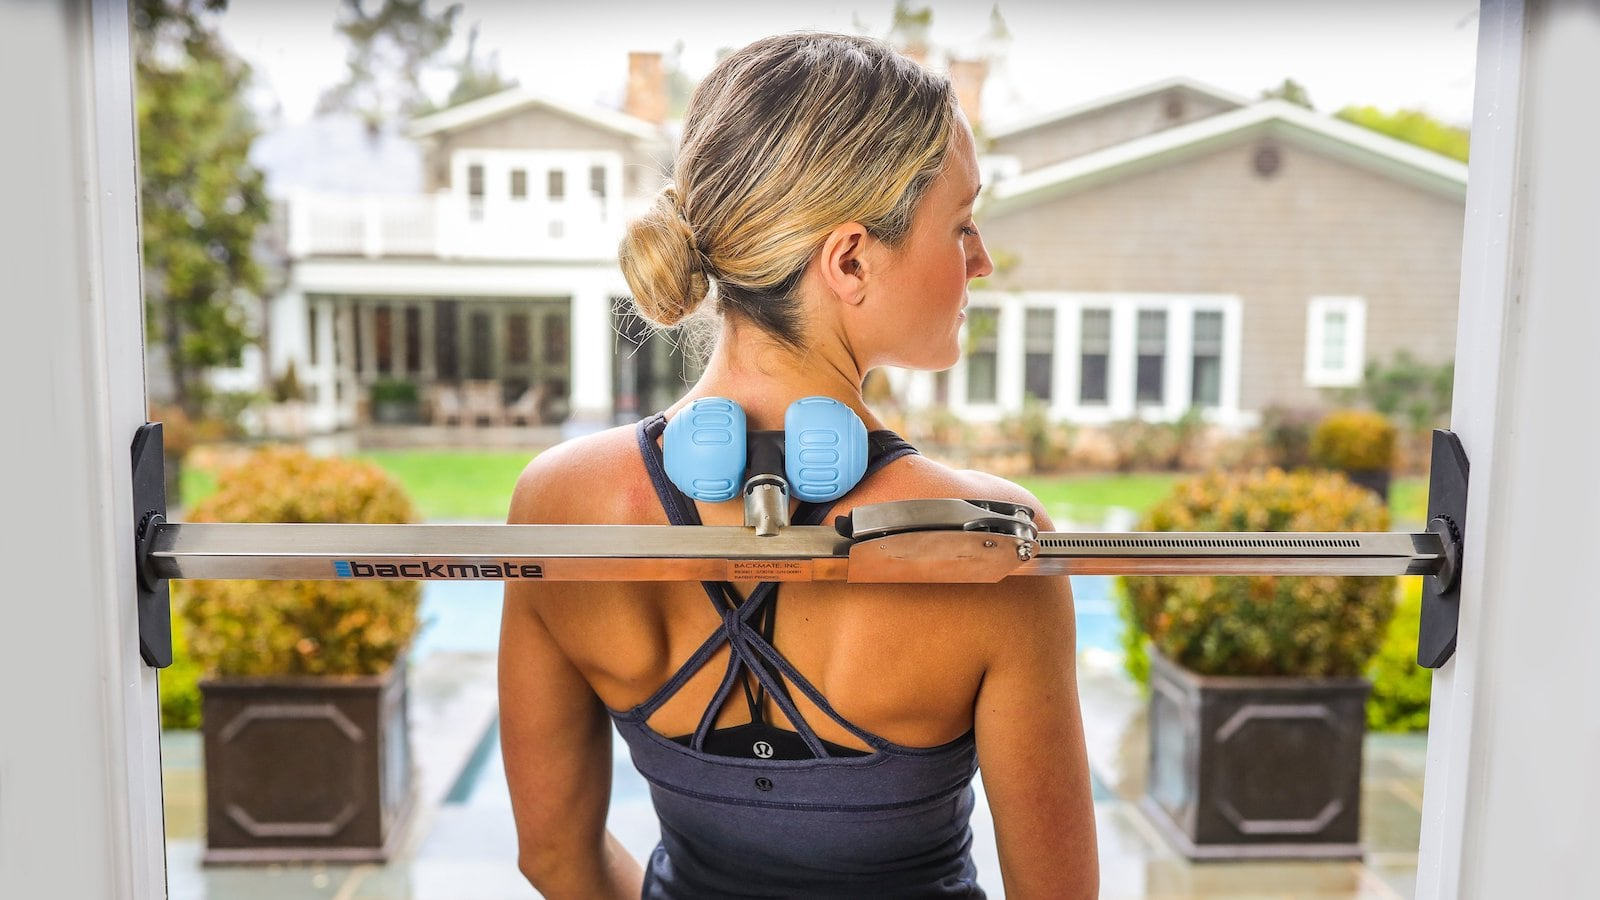 Backmate Back and Neck Pain Relief Tool